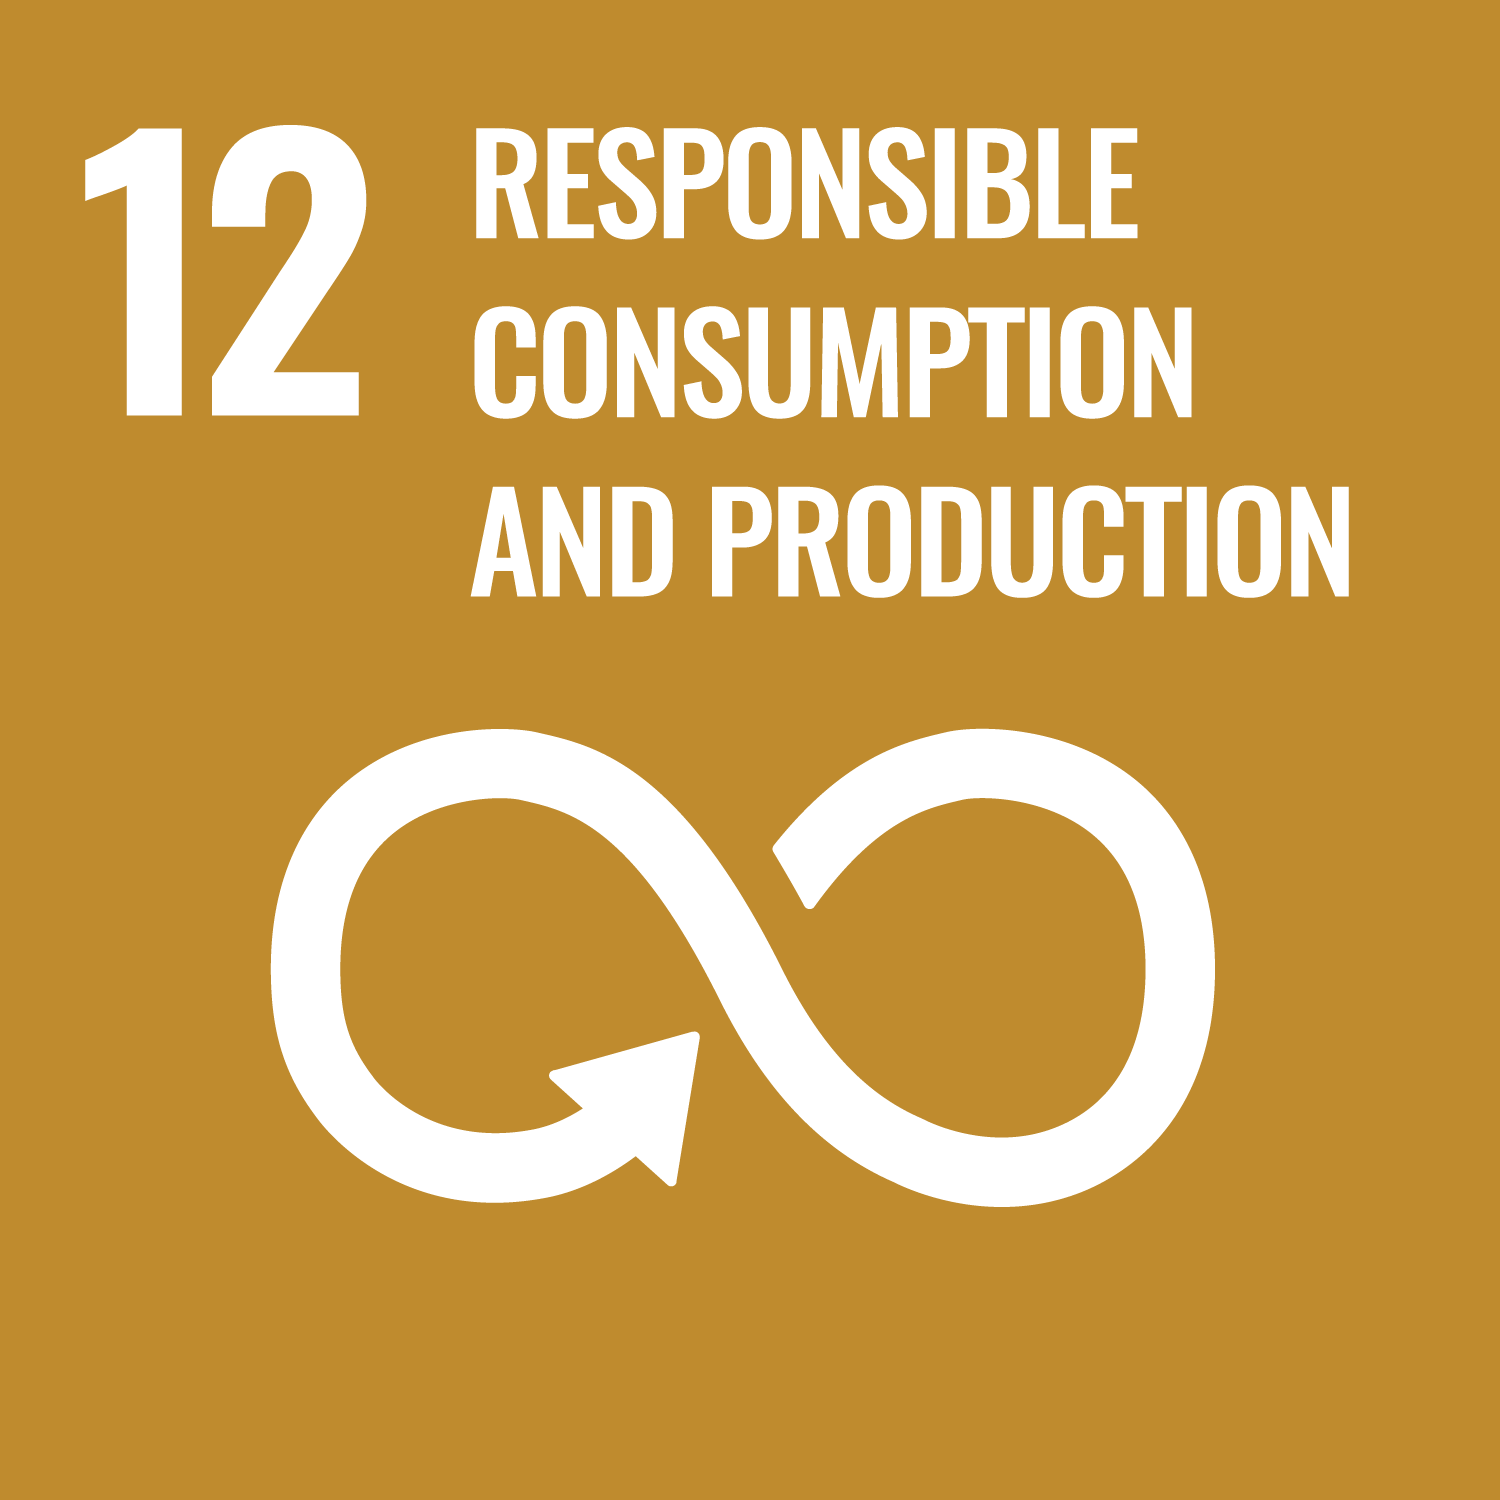 Goal 12 icon - Responsible consumption and production